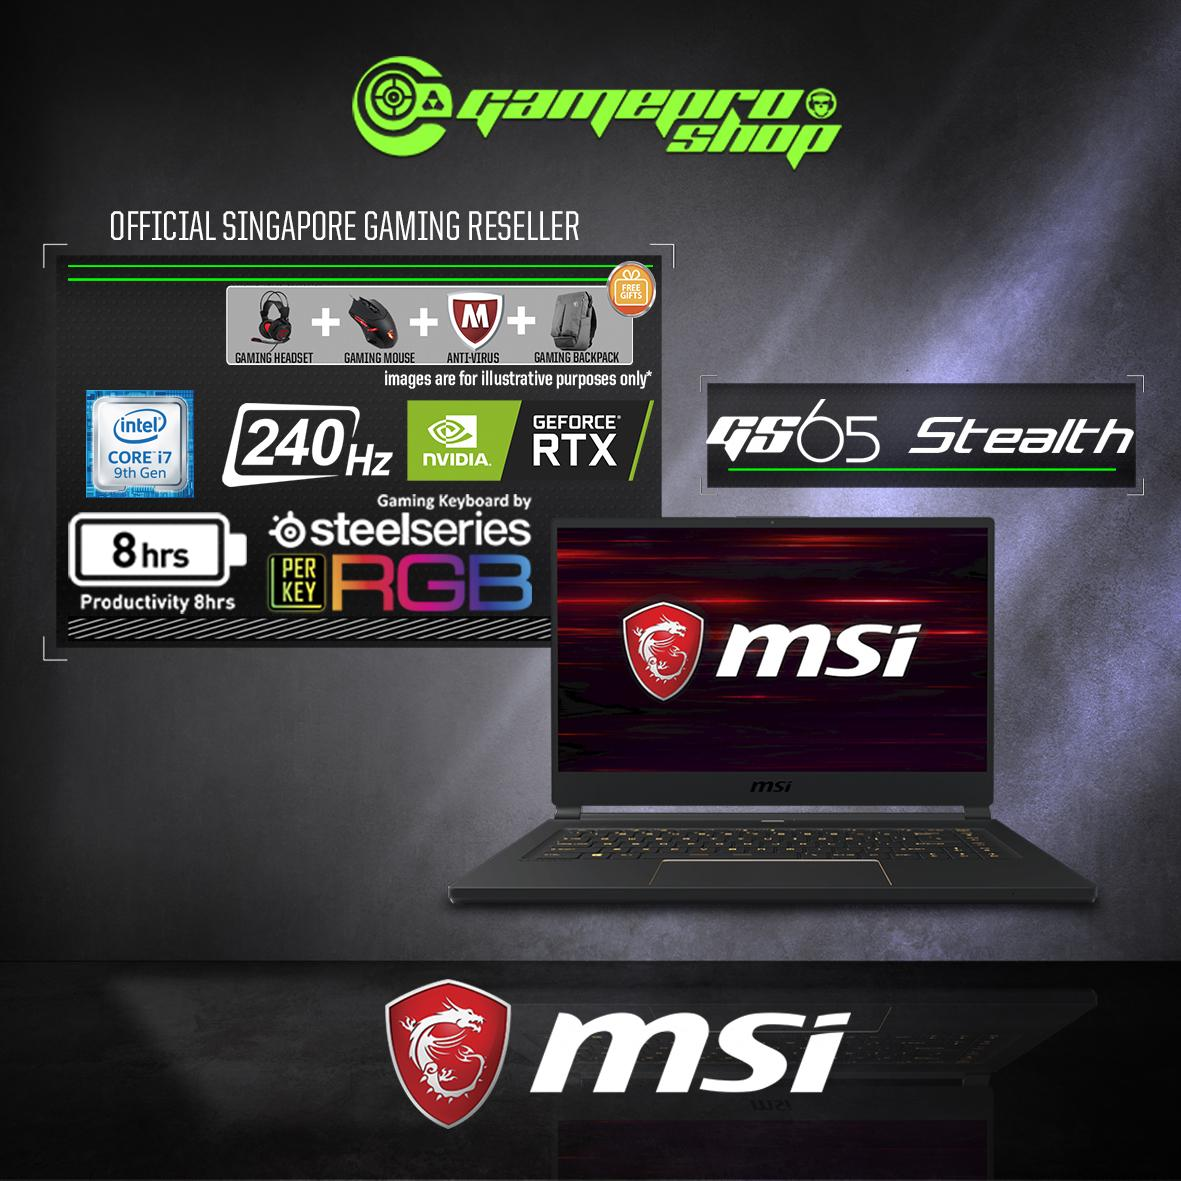 9th Gen MSI GS65 RTX2080 STEALTH 9SG - 682SG (i7-9750H / 32GB / 1TB SSD / RTX2080 Max-Q) 15.6 FHD with 240Hz GAMING LAPTOP *GSS PROMO*